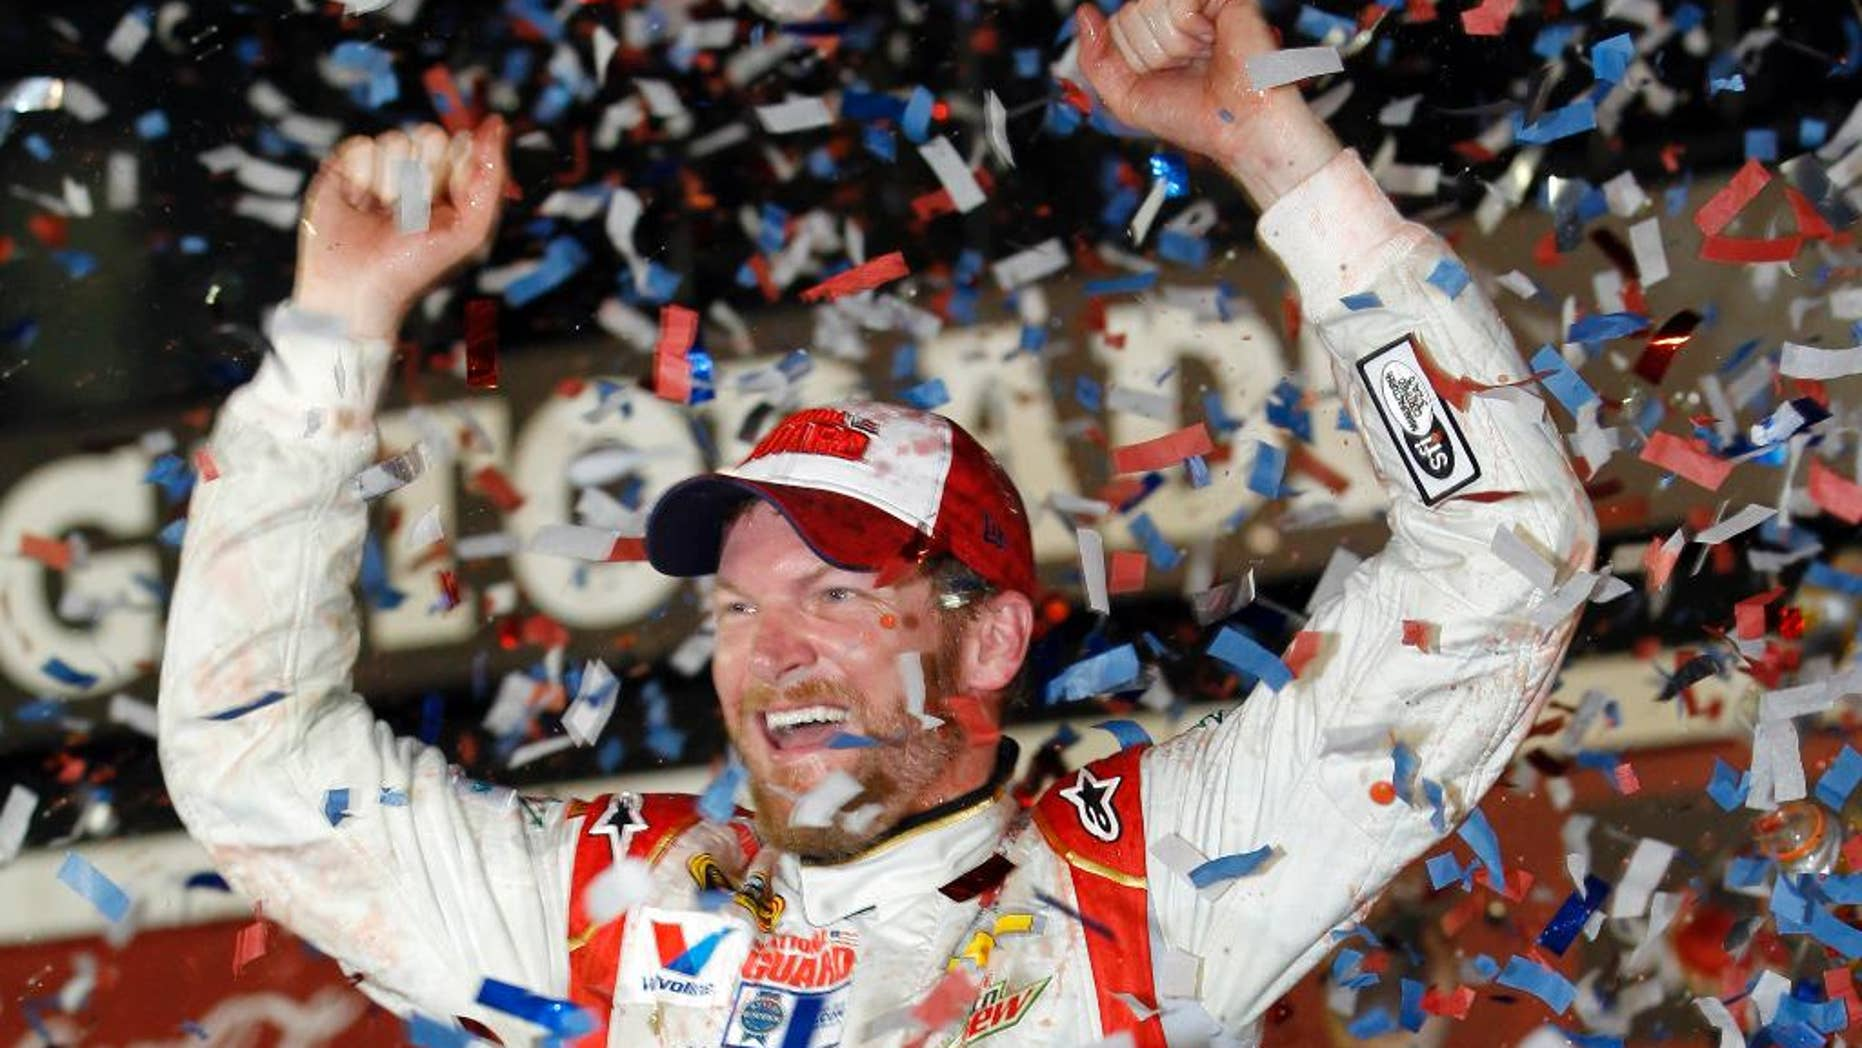 FILE - In this Feb. 23, 2014 file photo, Dale Earnhardt Jr. celebrates in Victory Lane after winning the NASCAR Daytona 500 Sprint Cup series auto race at Daytona International Speedway in Daytona Beach, Fla. As NASCAR heads West for a two-race swing through Phoenix and Las Vegas, the challenge becomes duplicating the Daytona 500 so that the remaining 36 events are half as exciting. (AP Photo/Terry Renna, File)